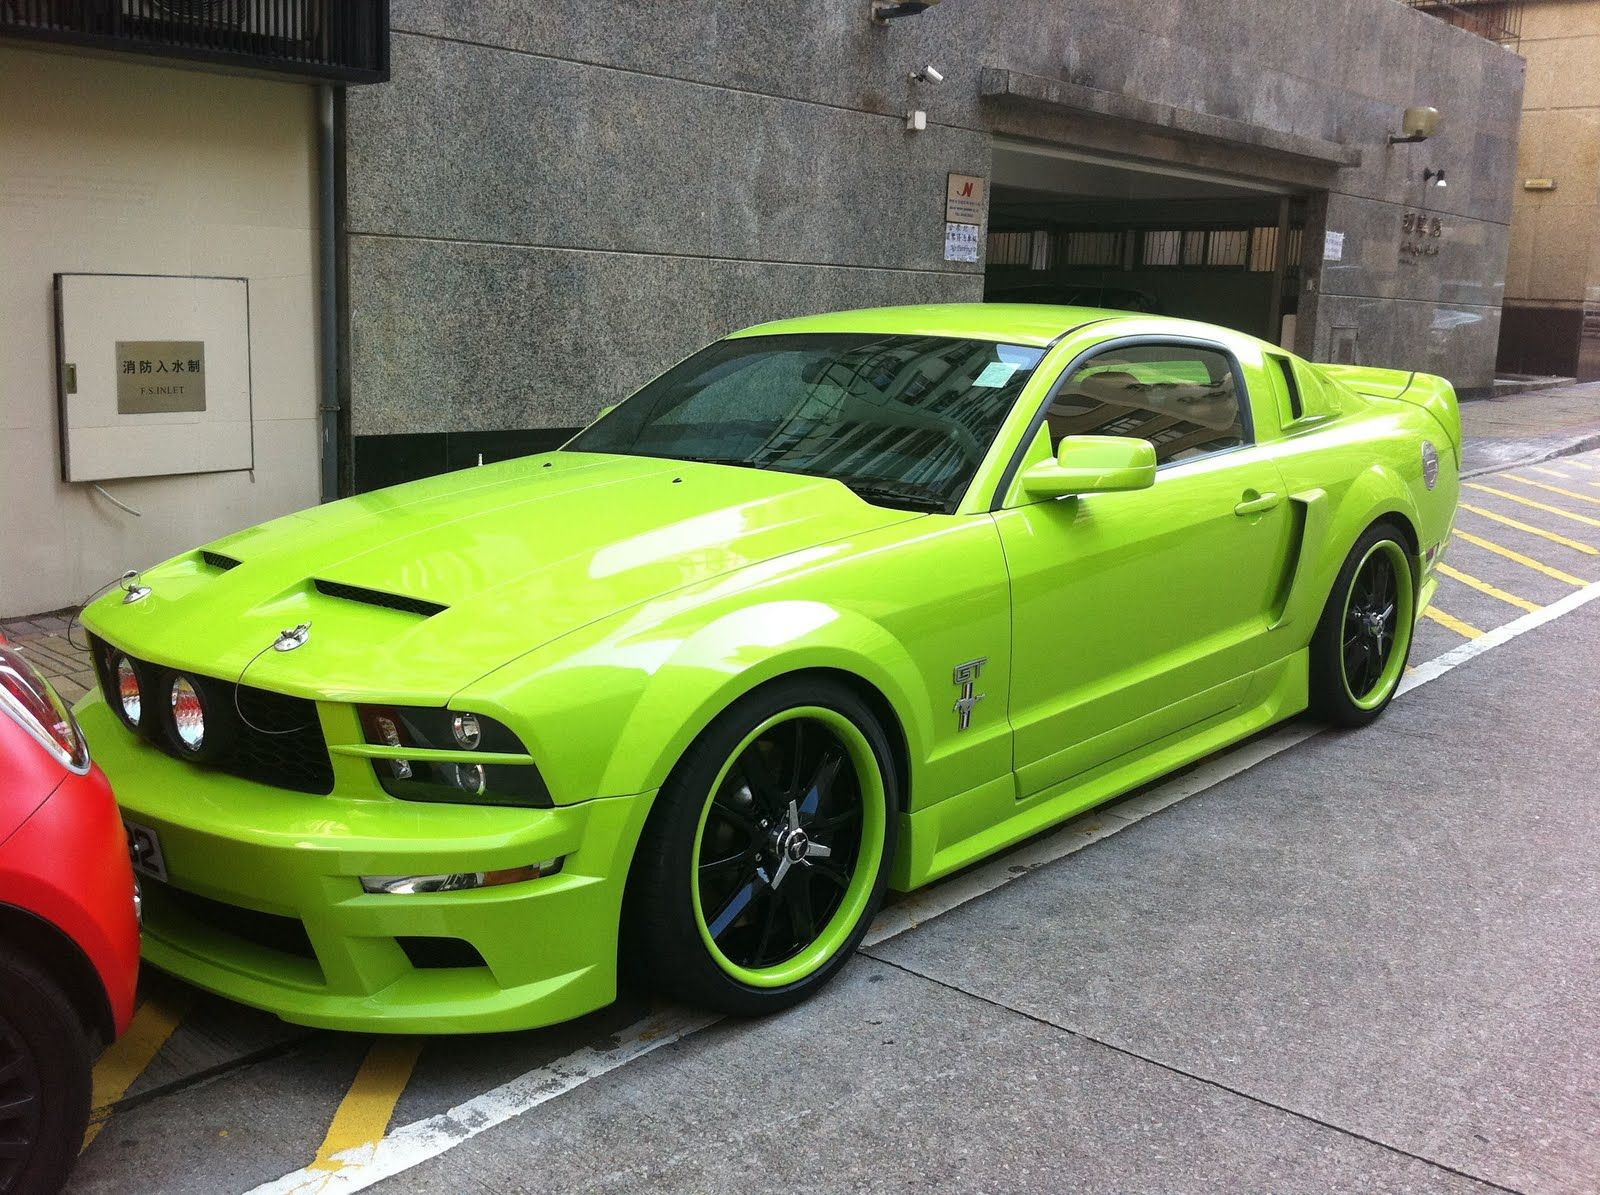 18 best mustang images on pinterest ford mustangs dream cars and ford mustang fastback